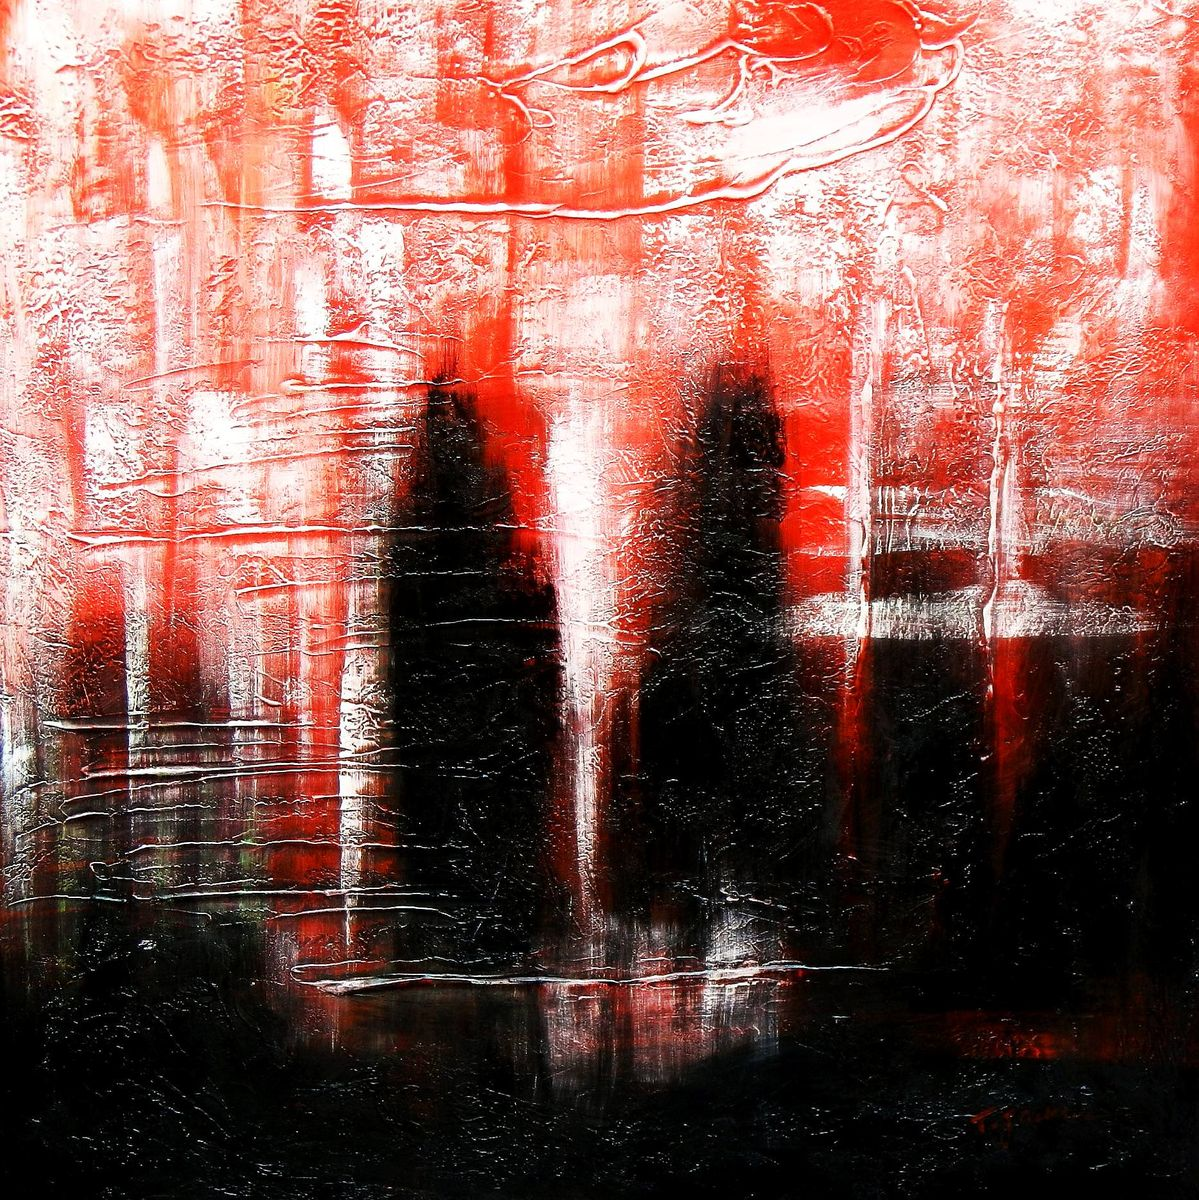 Abstract - Legacy of Fire IV g92950 80x80cm abstraktes Ölbild handgemalt